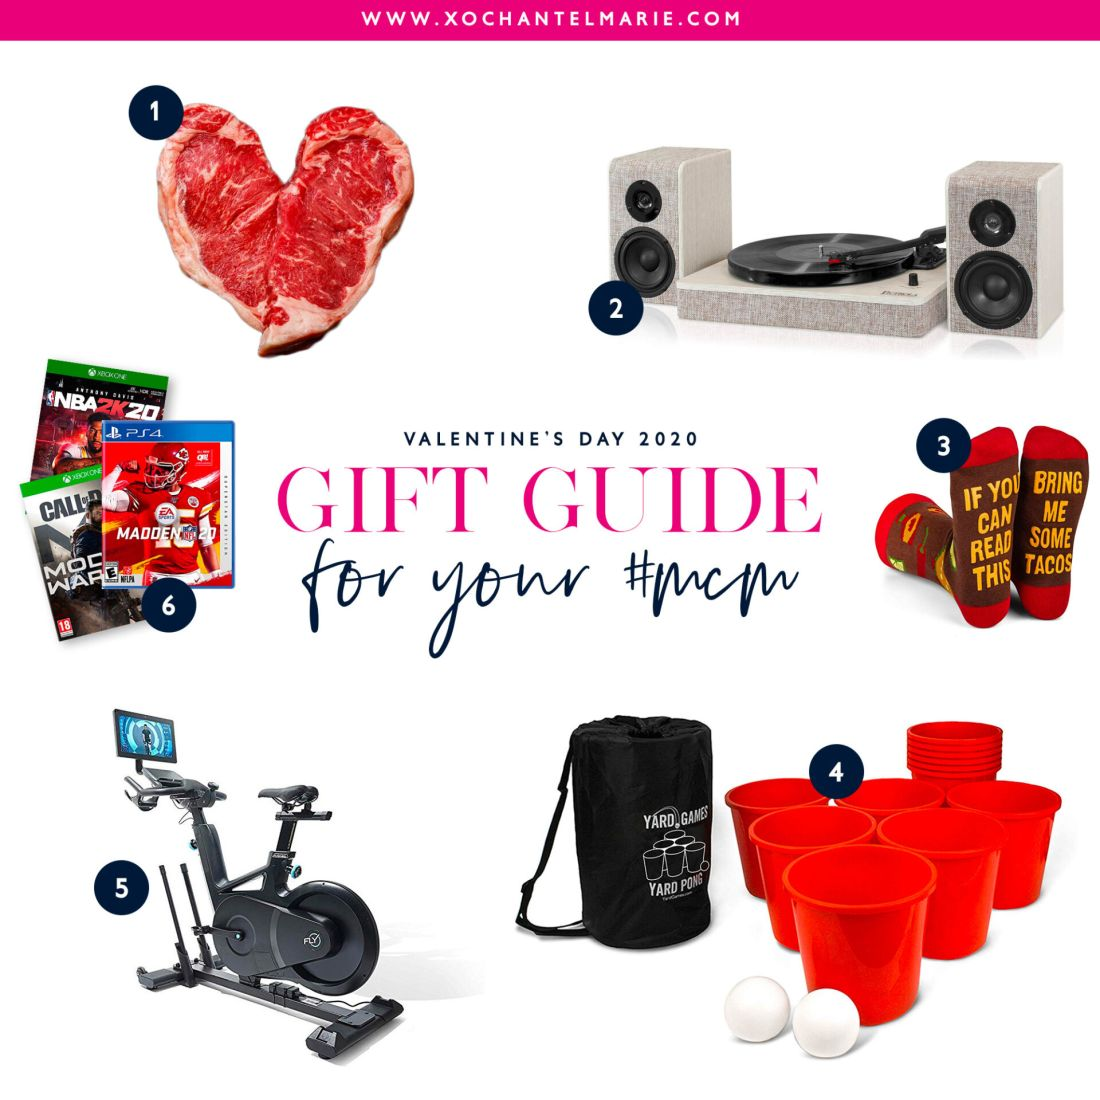 2020 Valentine's Day Gift Guide for him